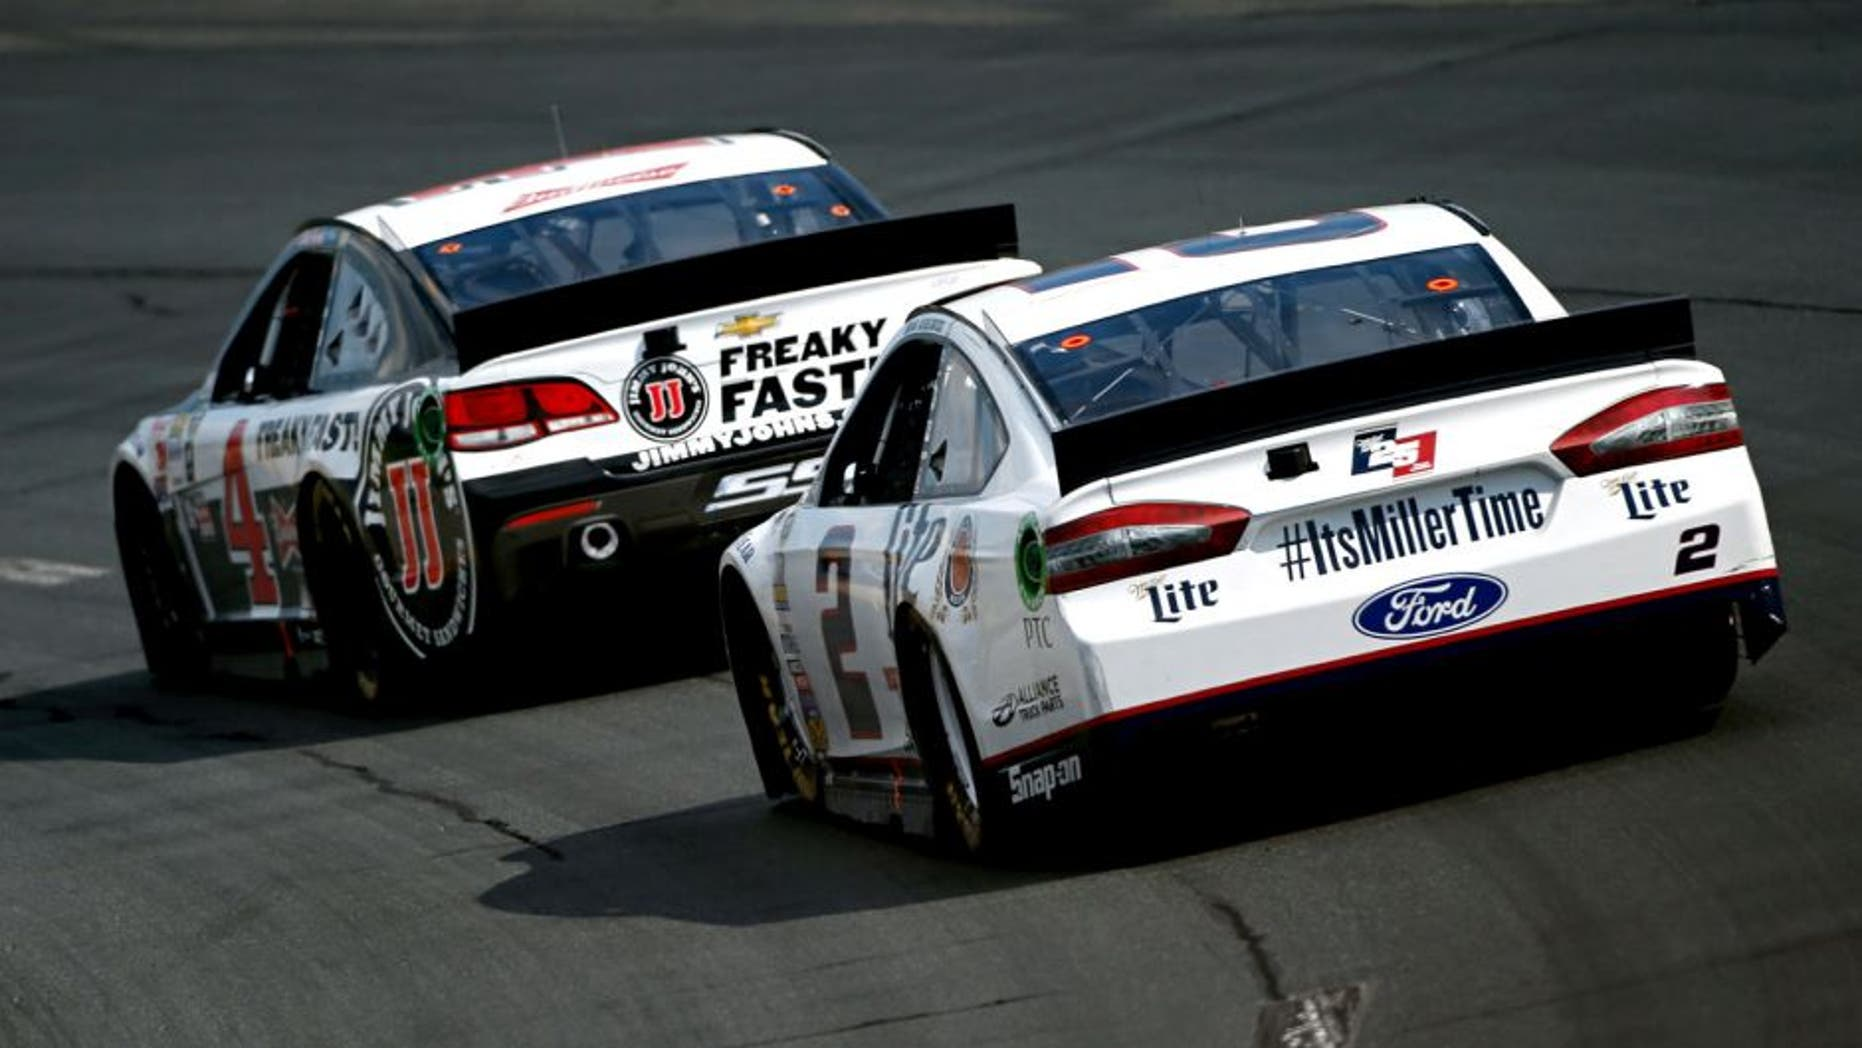 LOUDON, NH - JULY 19: Kevin Harvick, driver of the #4 Jimmy John's/Budweiser Chevrolet, leads Brad Keselowski, driver of the #2 Miller Lite Ford, during the NASCAR Sprint Cup Series 5-Hour ENERGY 301 at New Hampshire Motor Speedway on July 19, 2015 in Loudon, New Hampshire. (Photo by Todd Warshaw/NASCAR via Getty Images)